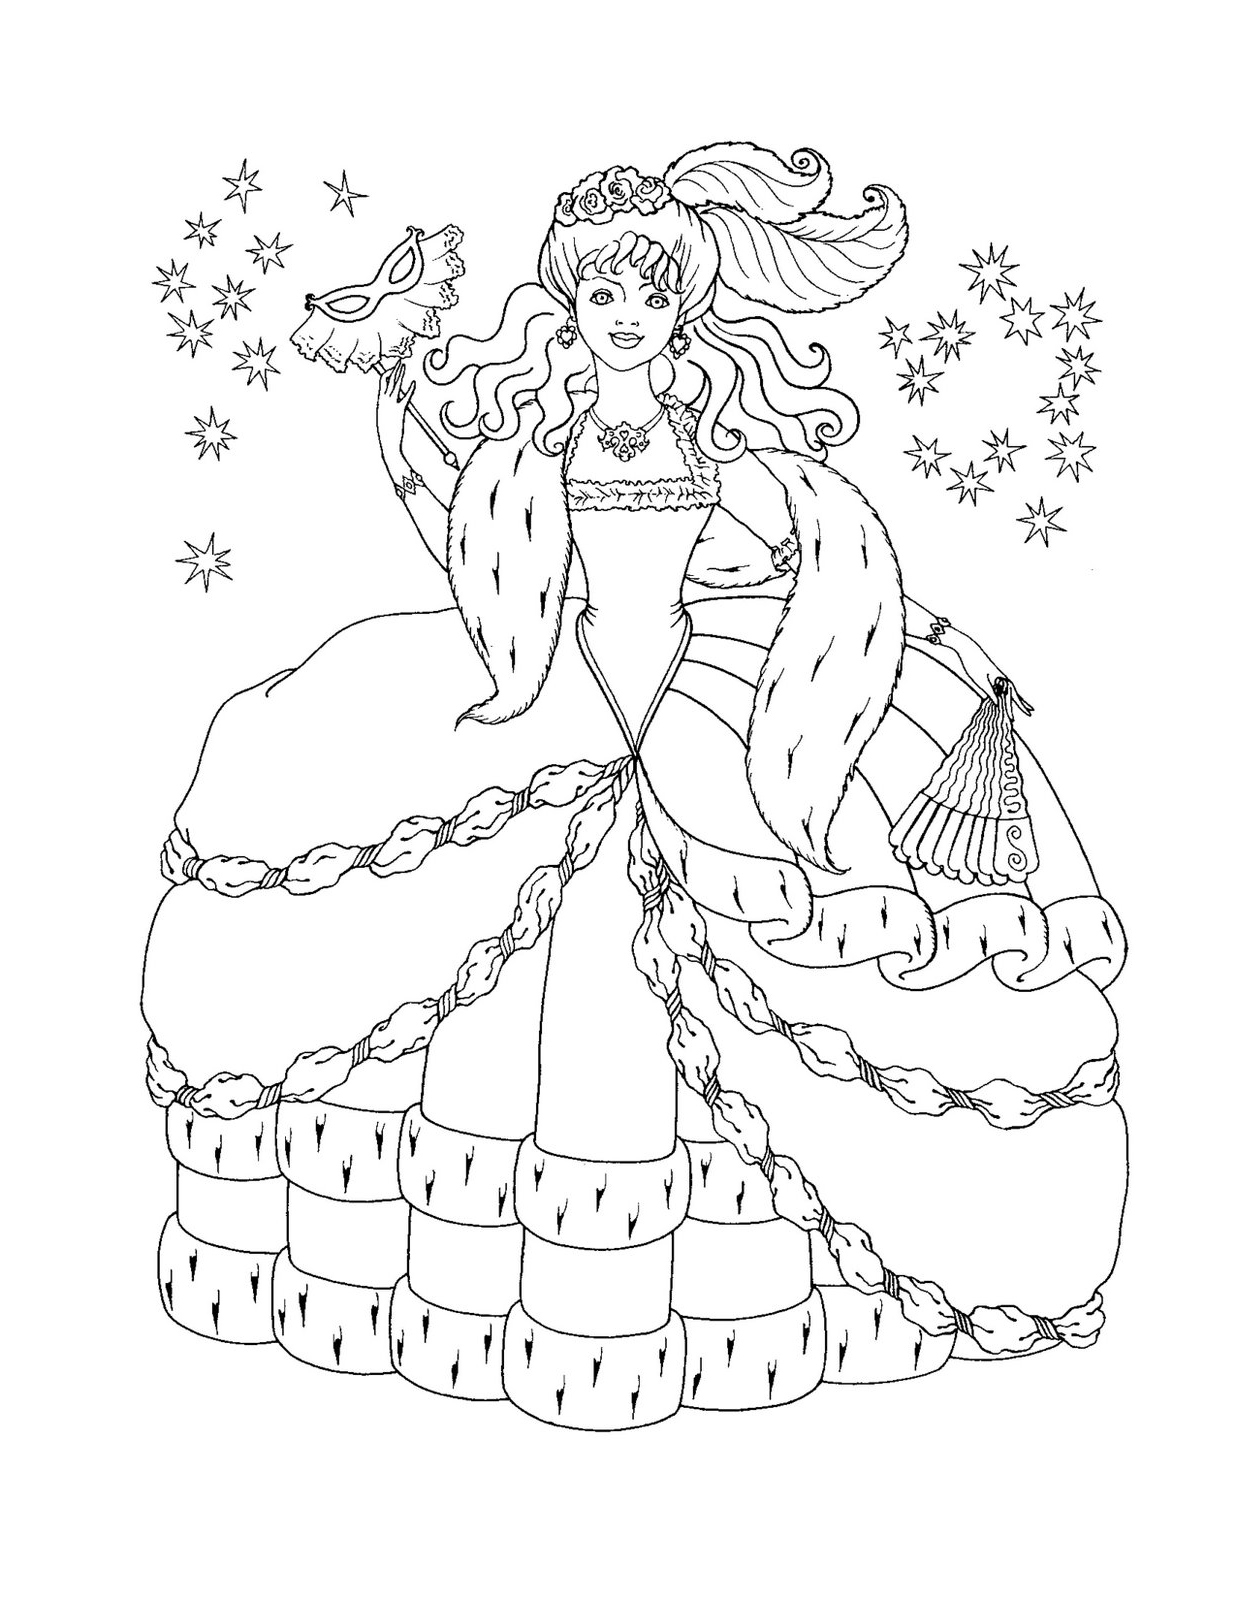 Disney princess coloring pages to print to download and ...